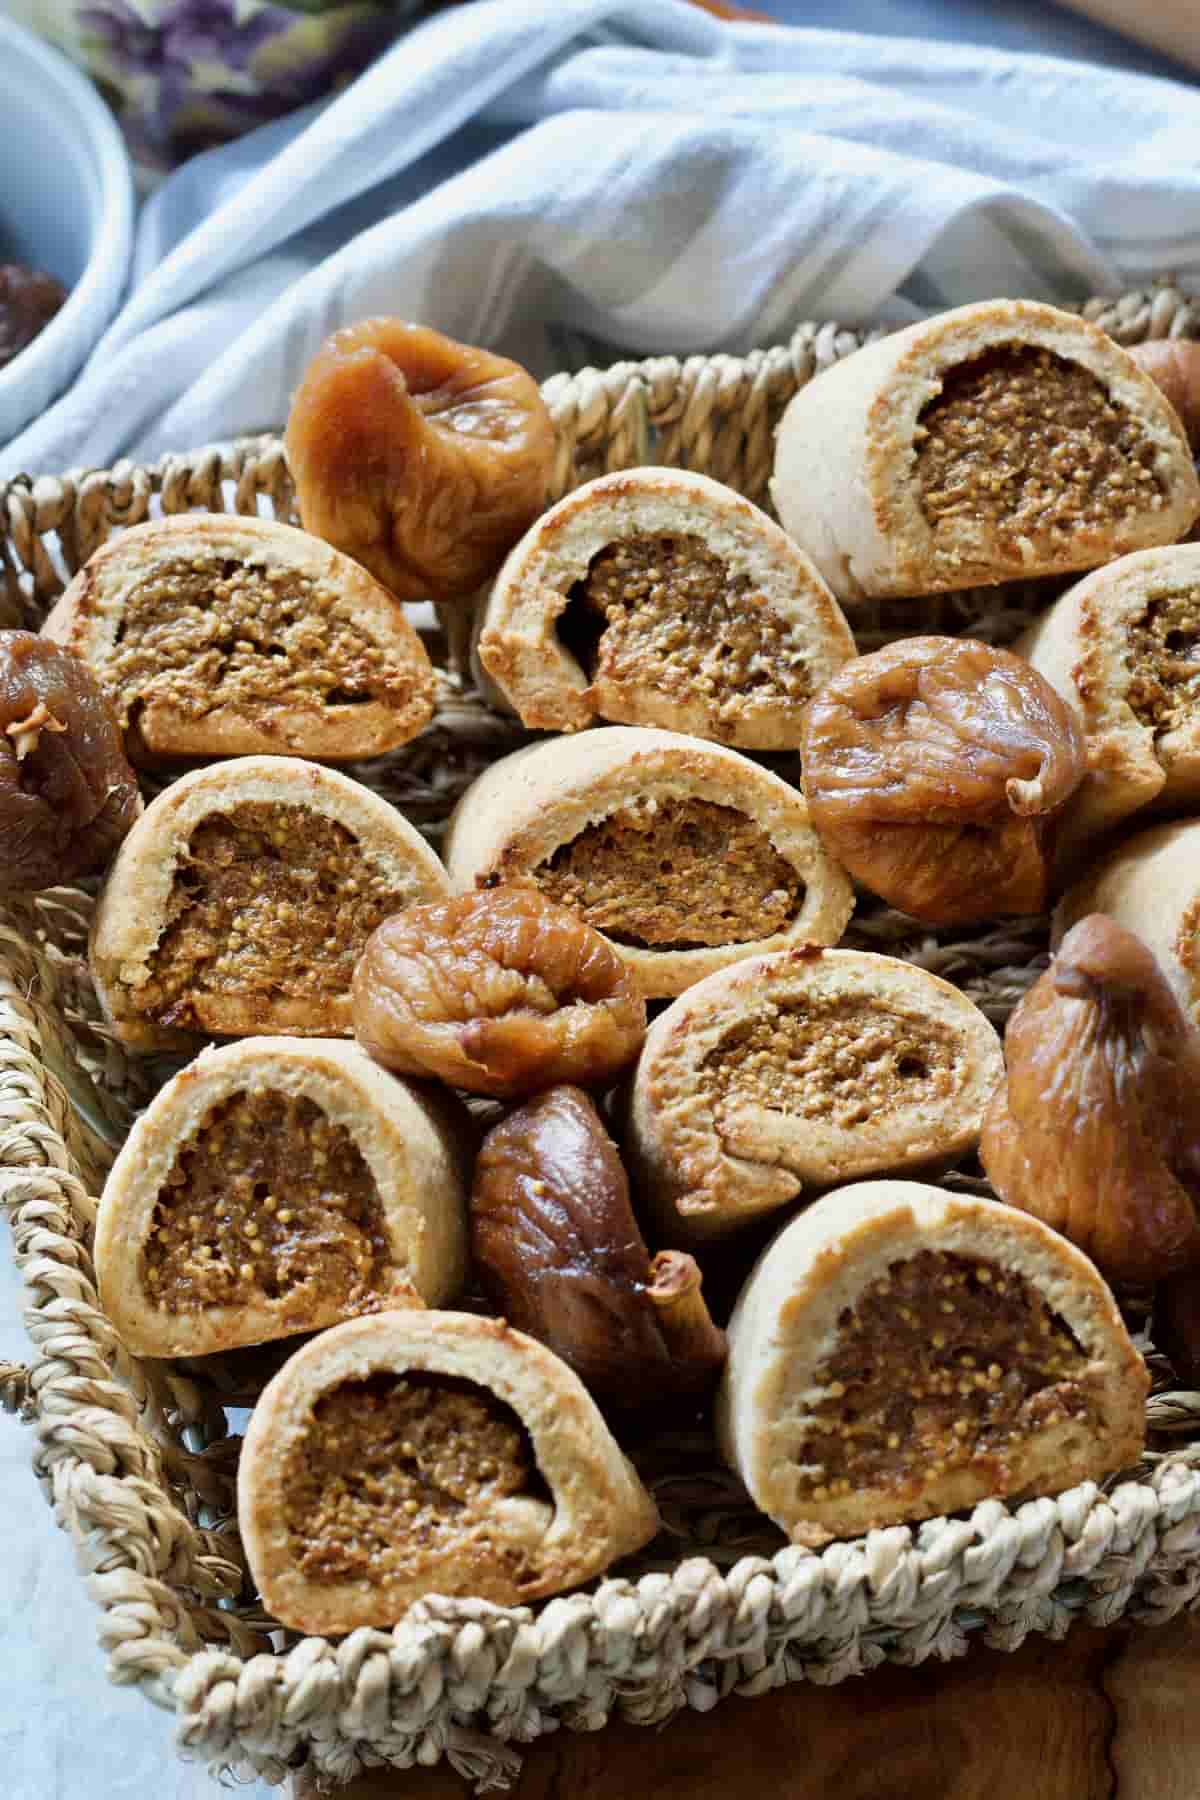 Wicker basket with homemade fig rolls and dried figs.